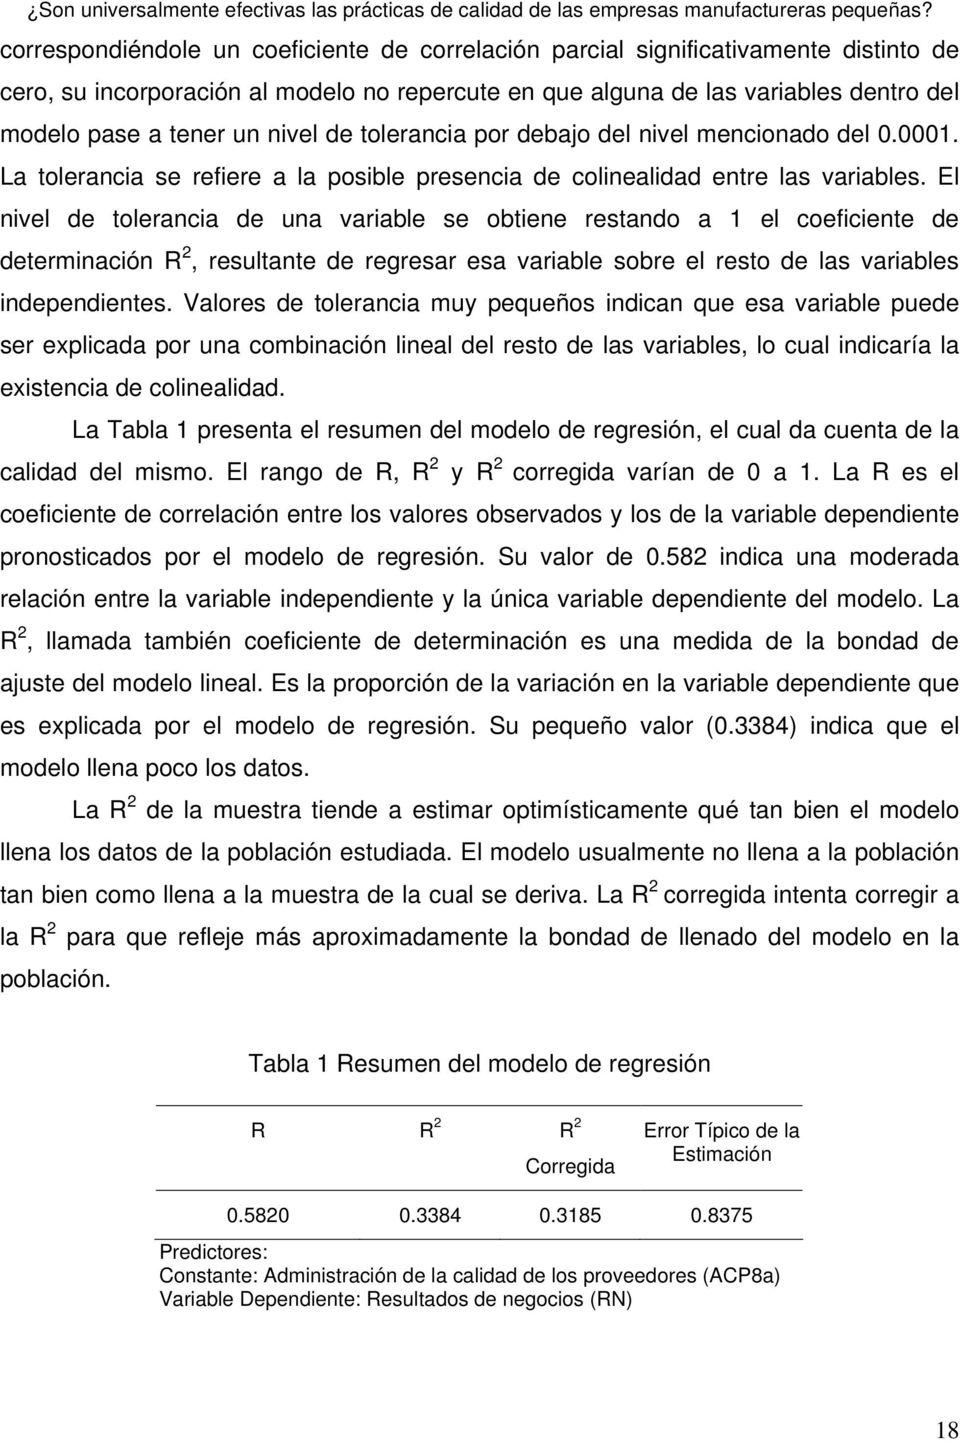 El nivel de tolerancia de una variable se obtiene restando a 1 el coeficiente de determinación R 2, resultante de regresar esa variable sobre el resto de las variables independientes.